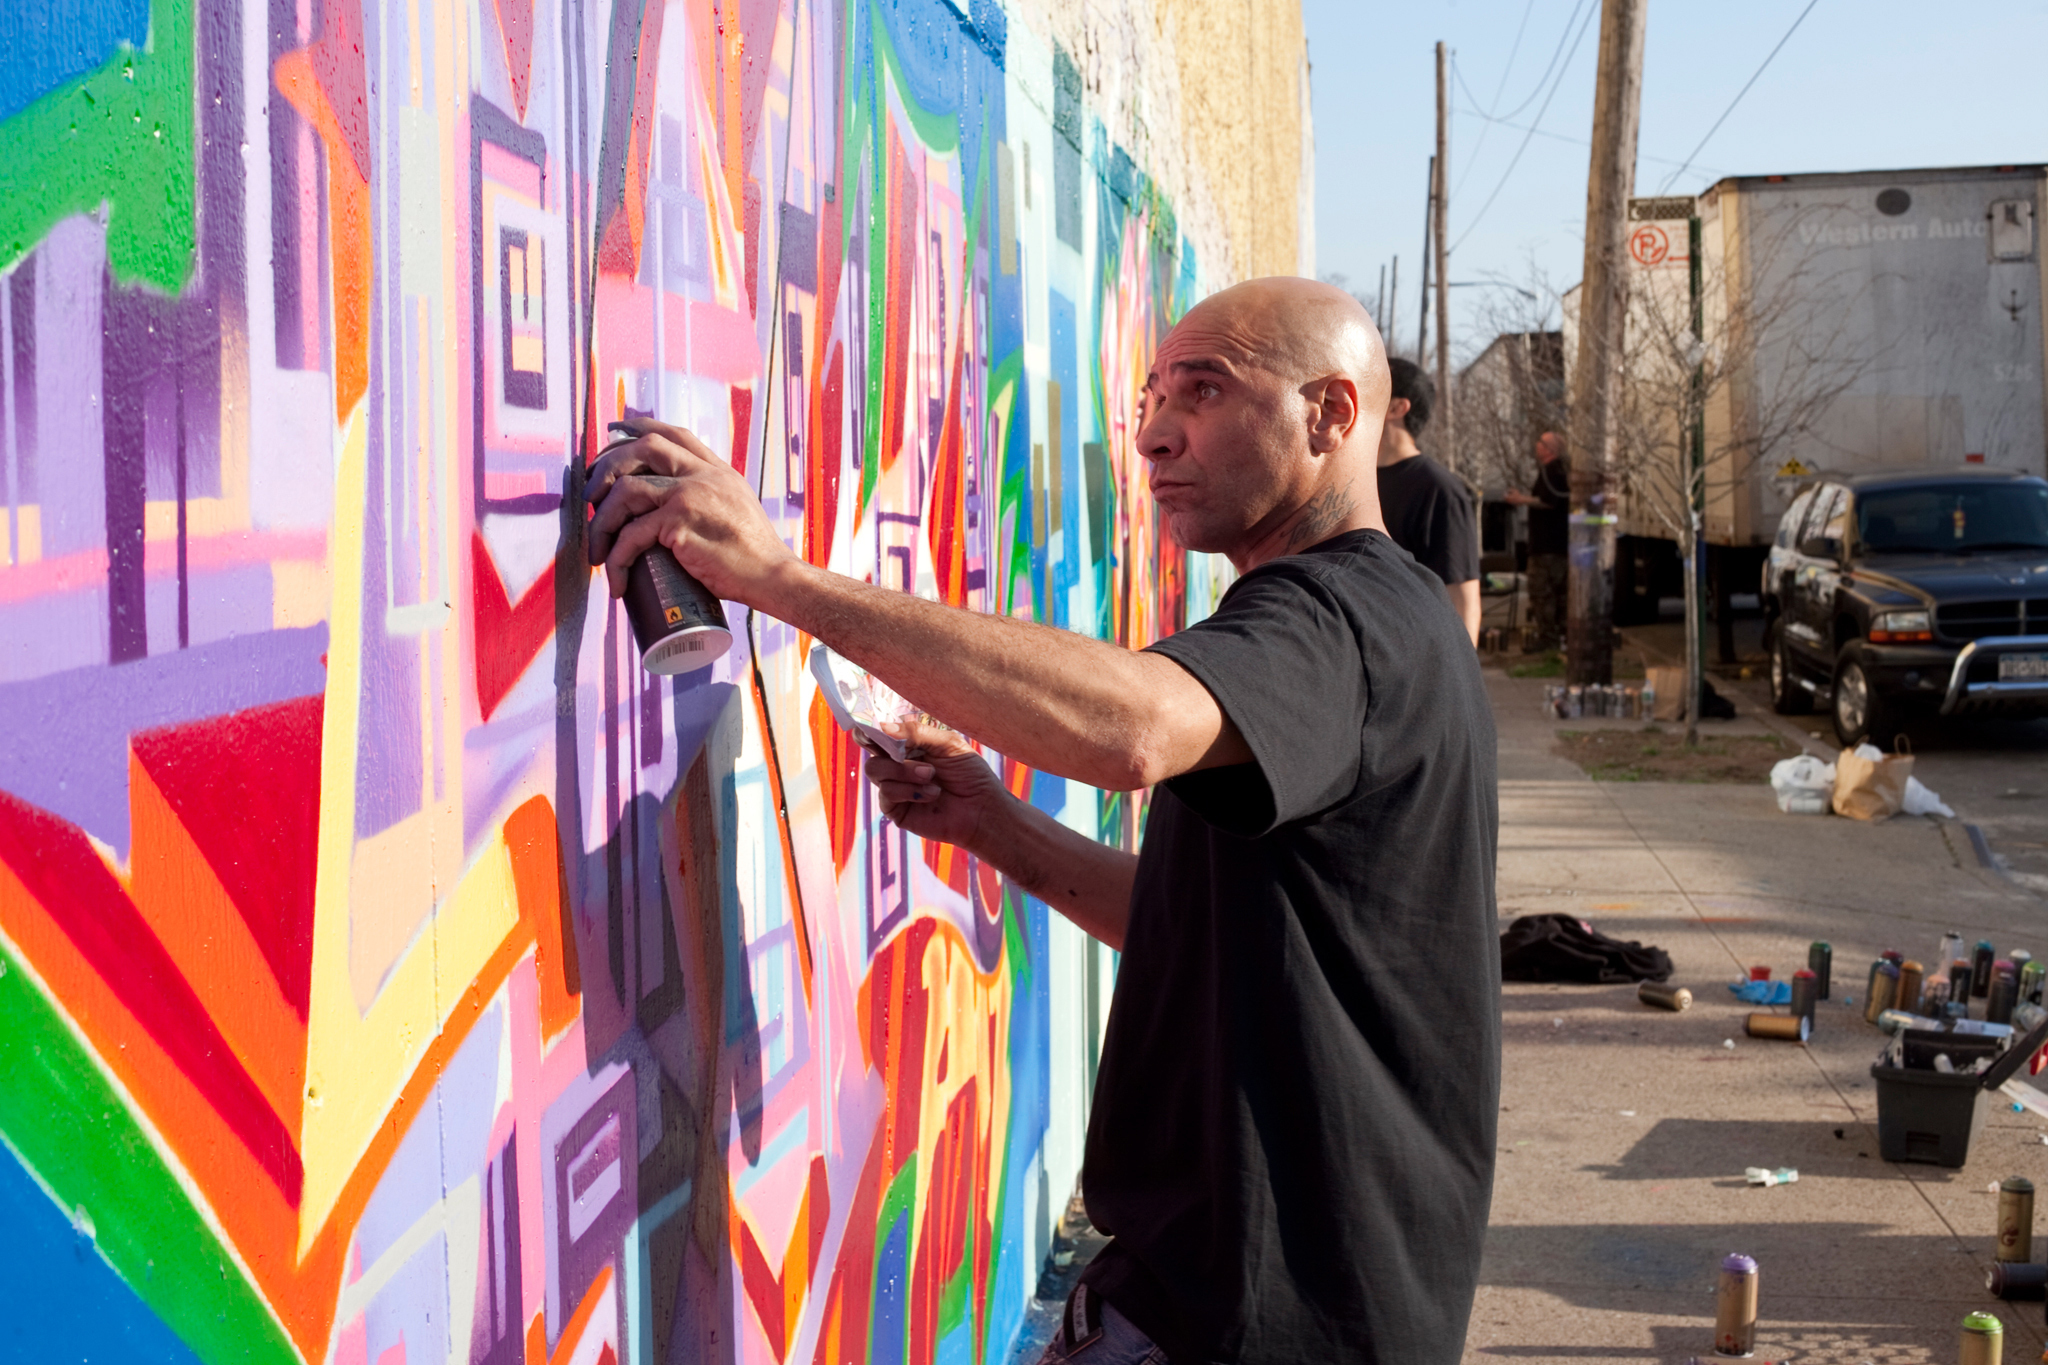 Mambo to Hip-Hop Part 3: The Graffiti Movement and the Media It Inspires